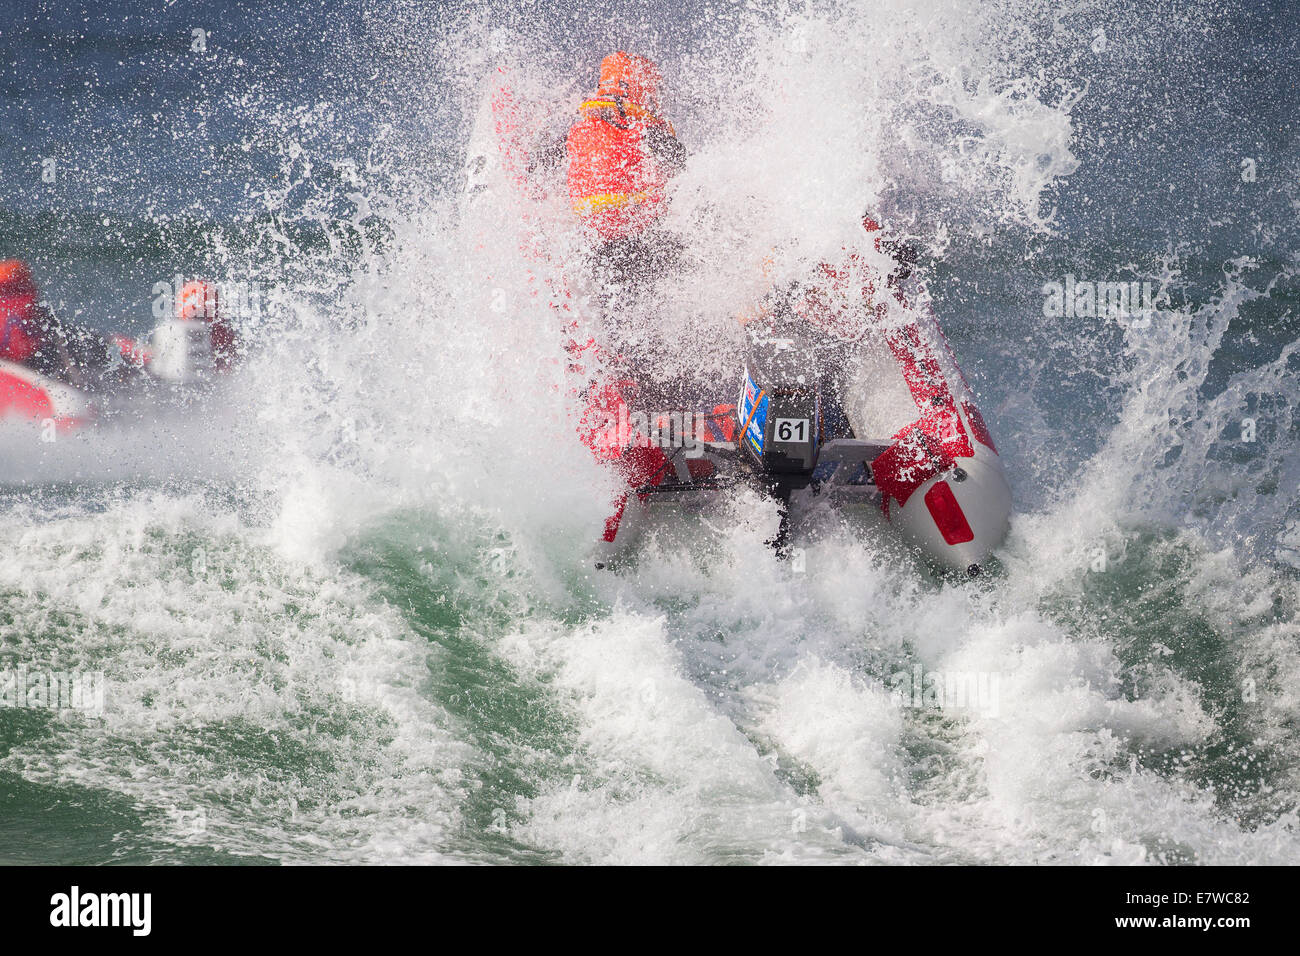 Thundercat Racing, Fistral Beach, Newquay, Cornwall UK Imagen De Stock